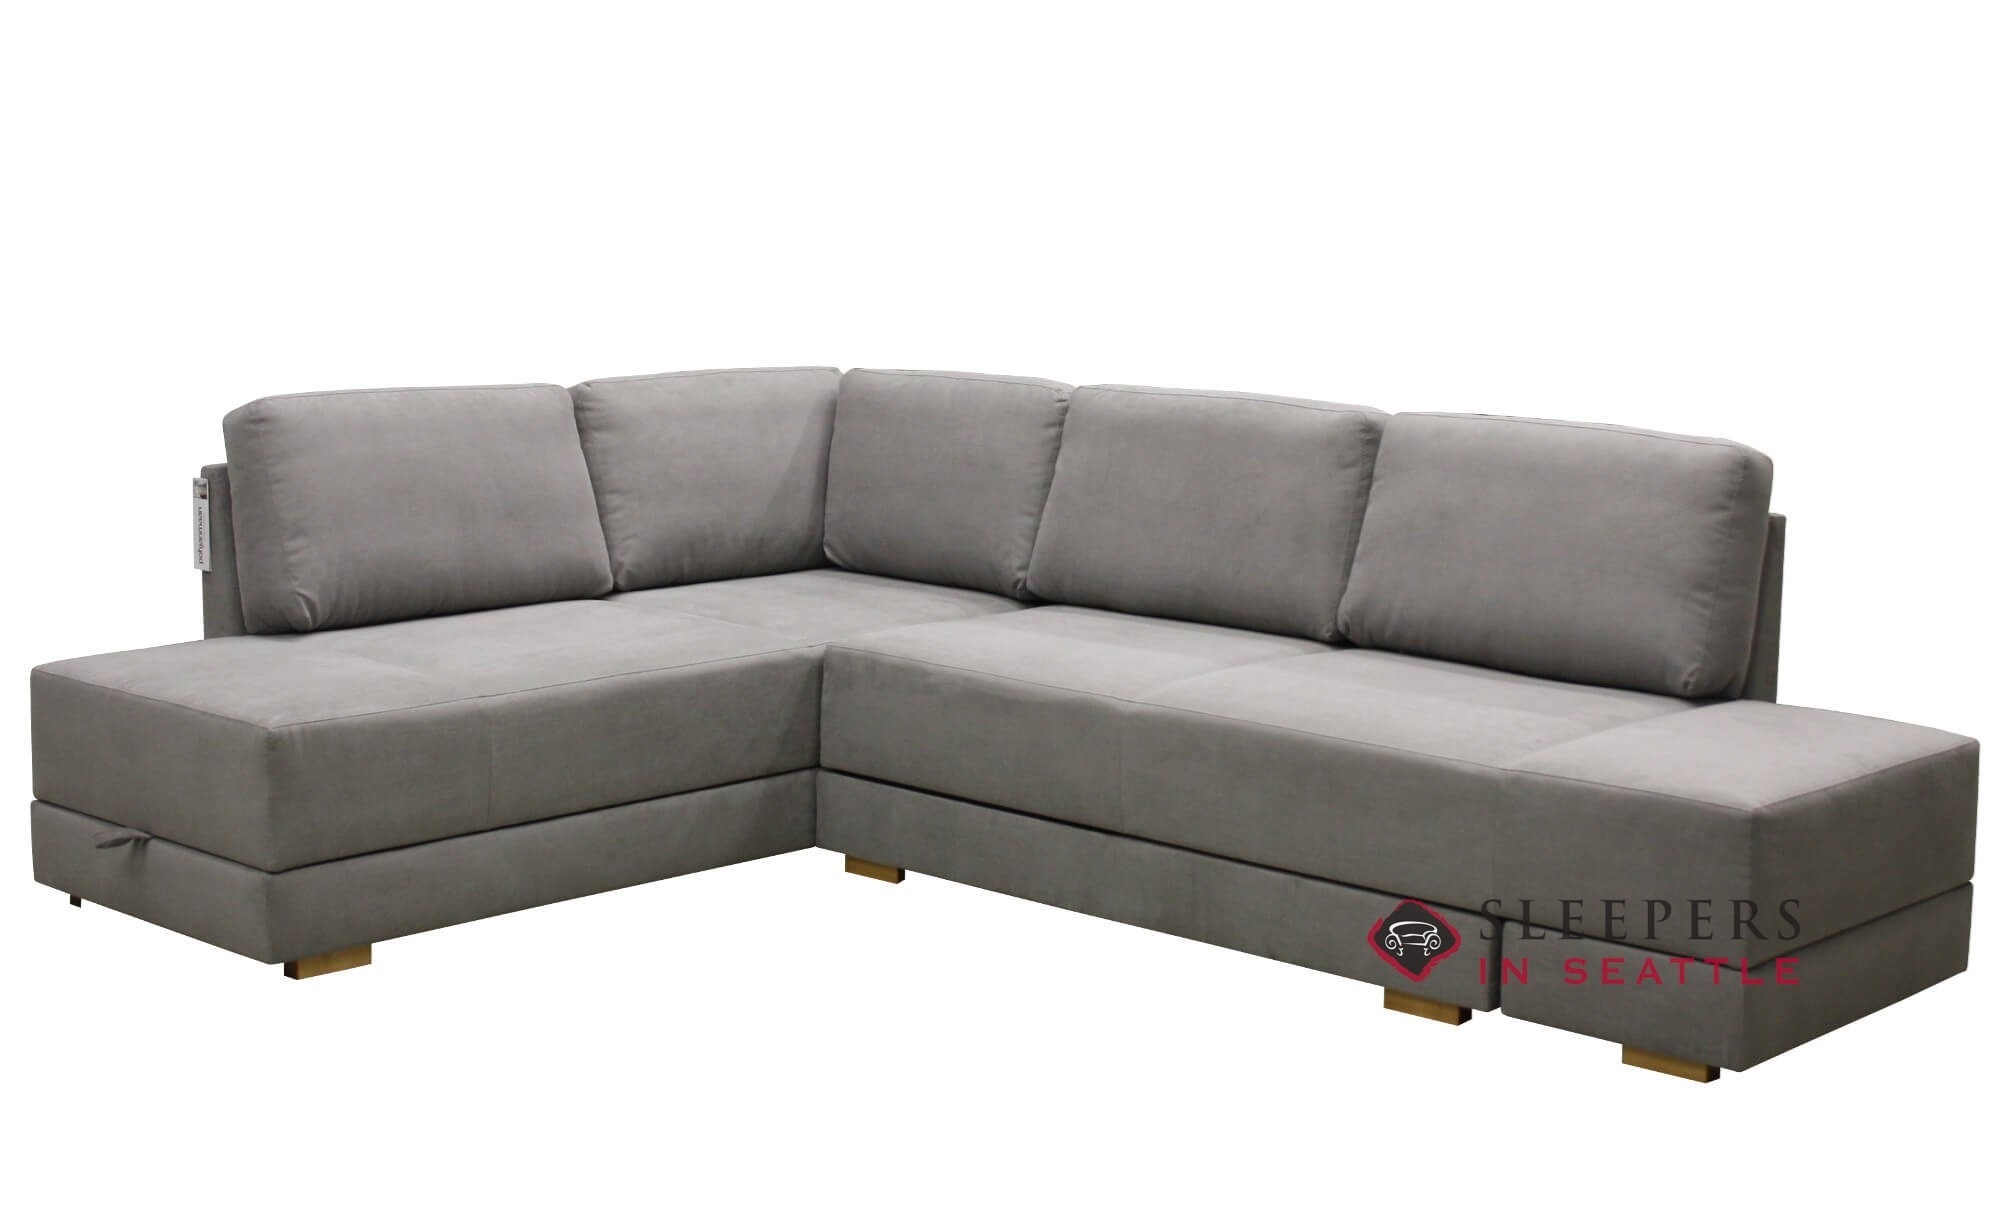 Brooklyn Sectional Queen Sleeper Sofa By Luonto With Storage Option